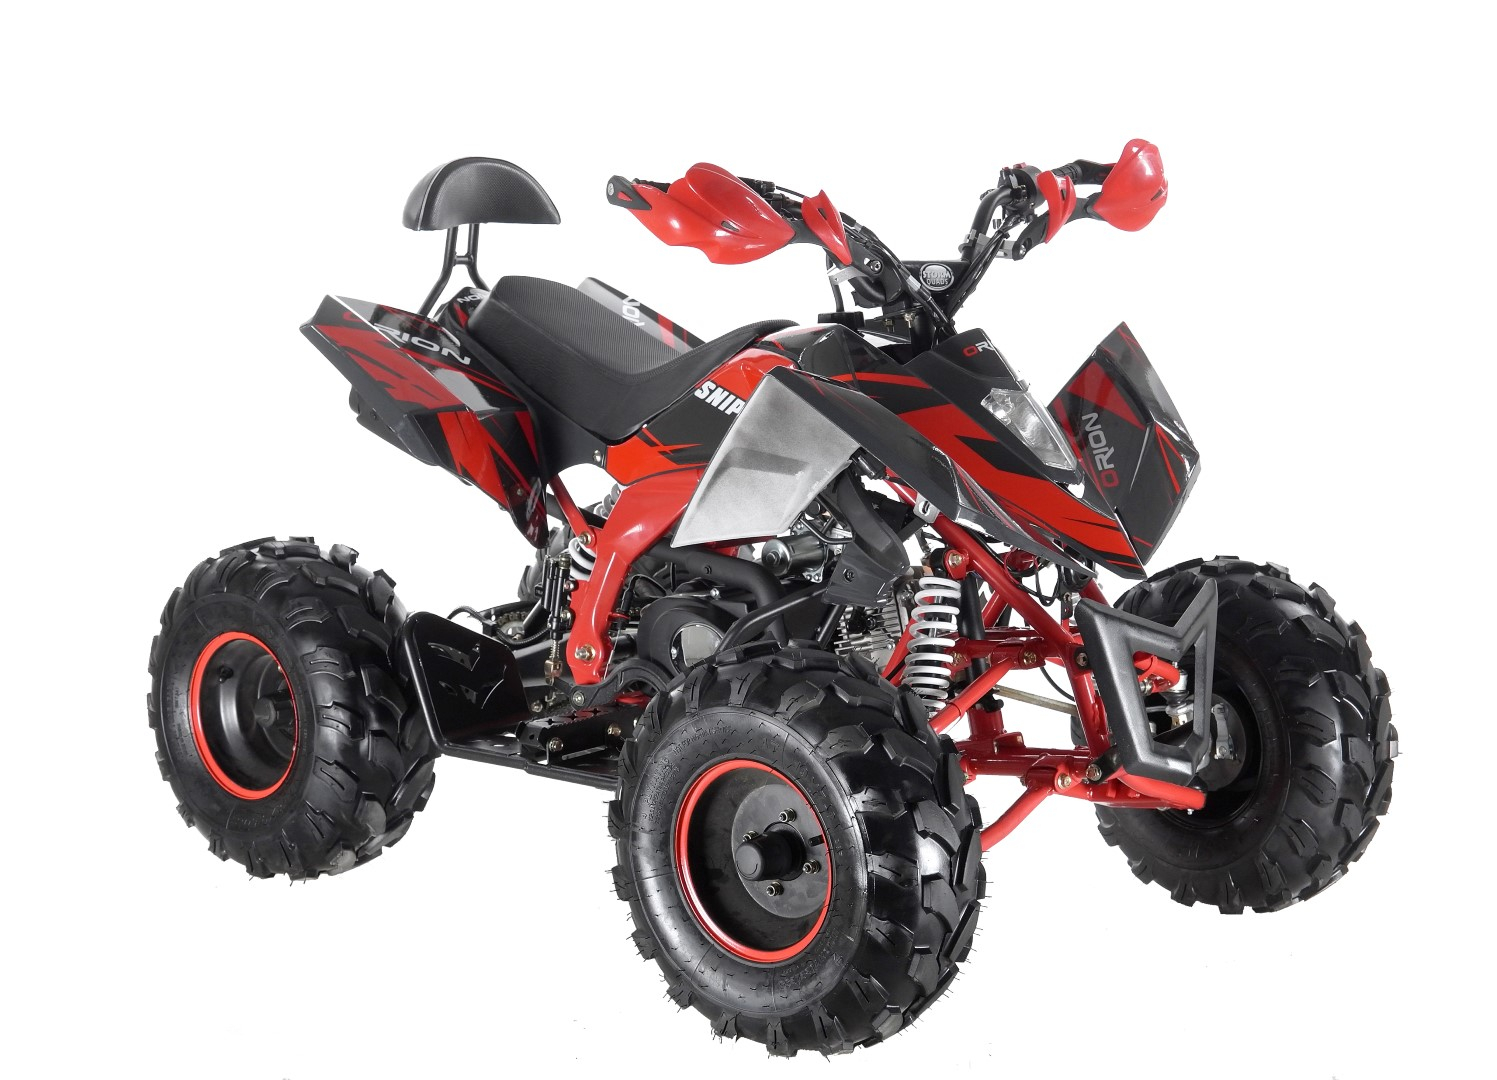 125cc Sniper Quad Bike With Reverse